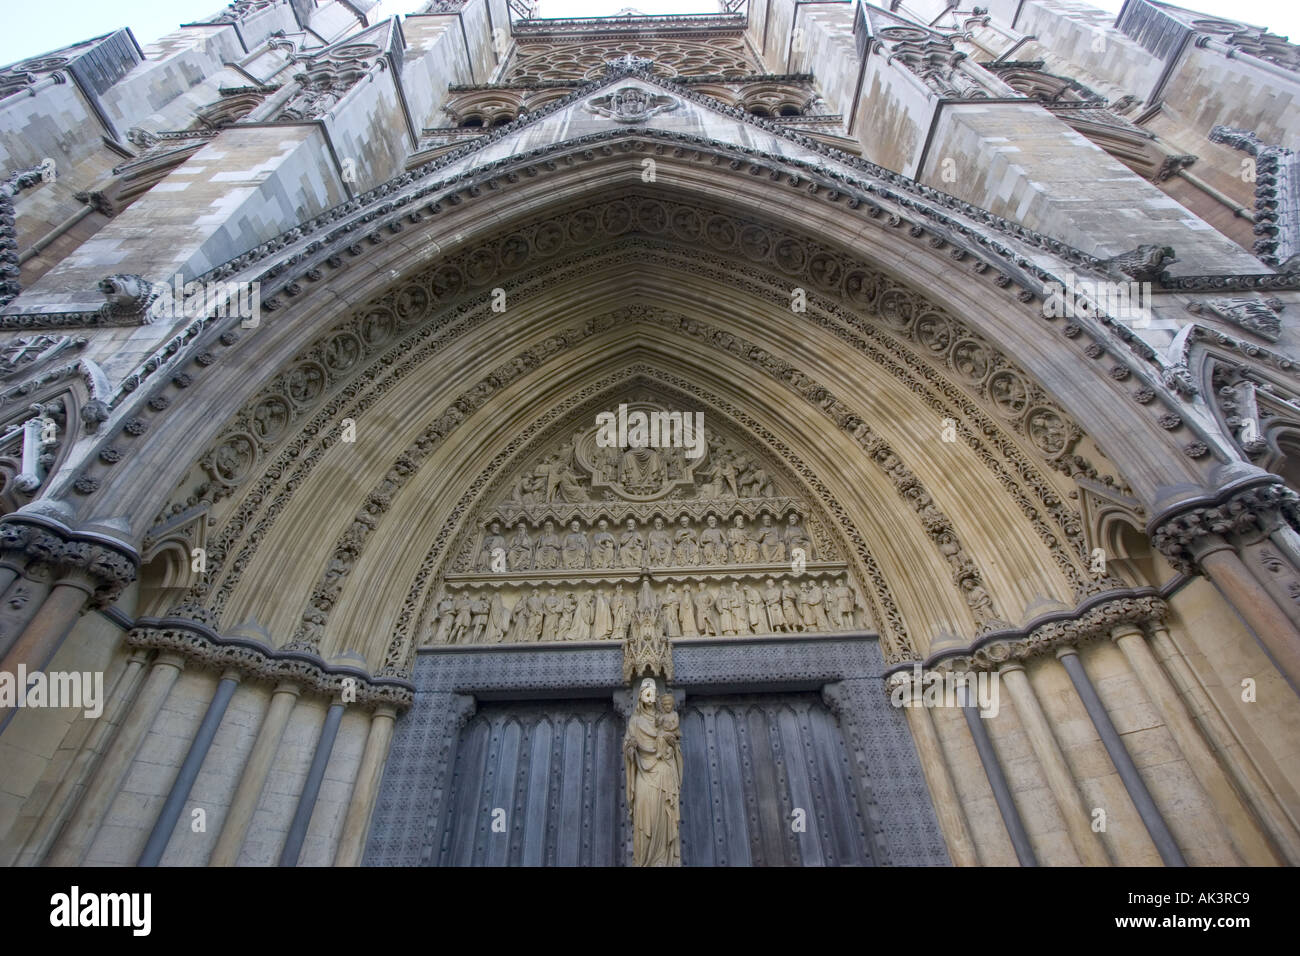 Doors to Westminster Abbey London England GB UK EU & Doors to Westminster Abbey London England GB UK EU Stock Photo ...